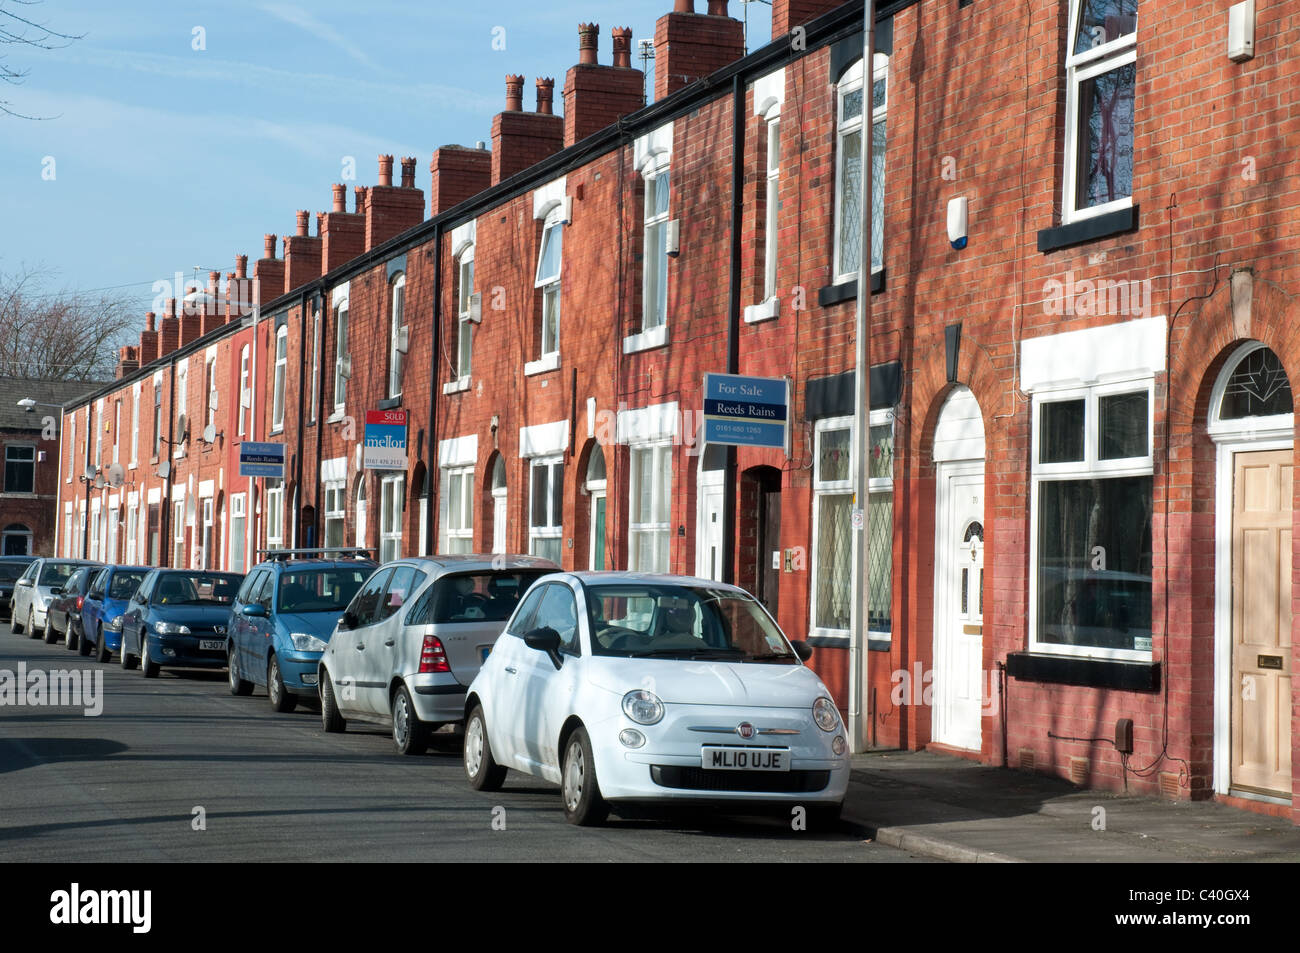 On street parking, row of terraced houses, Edgeley, Stockport. - Stock Image